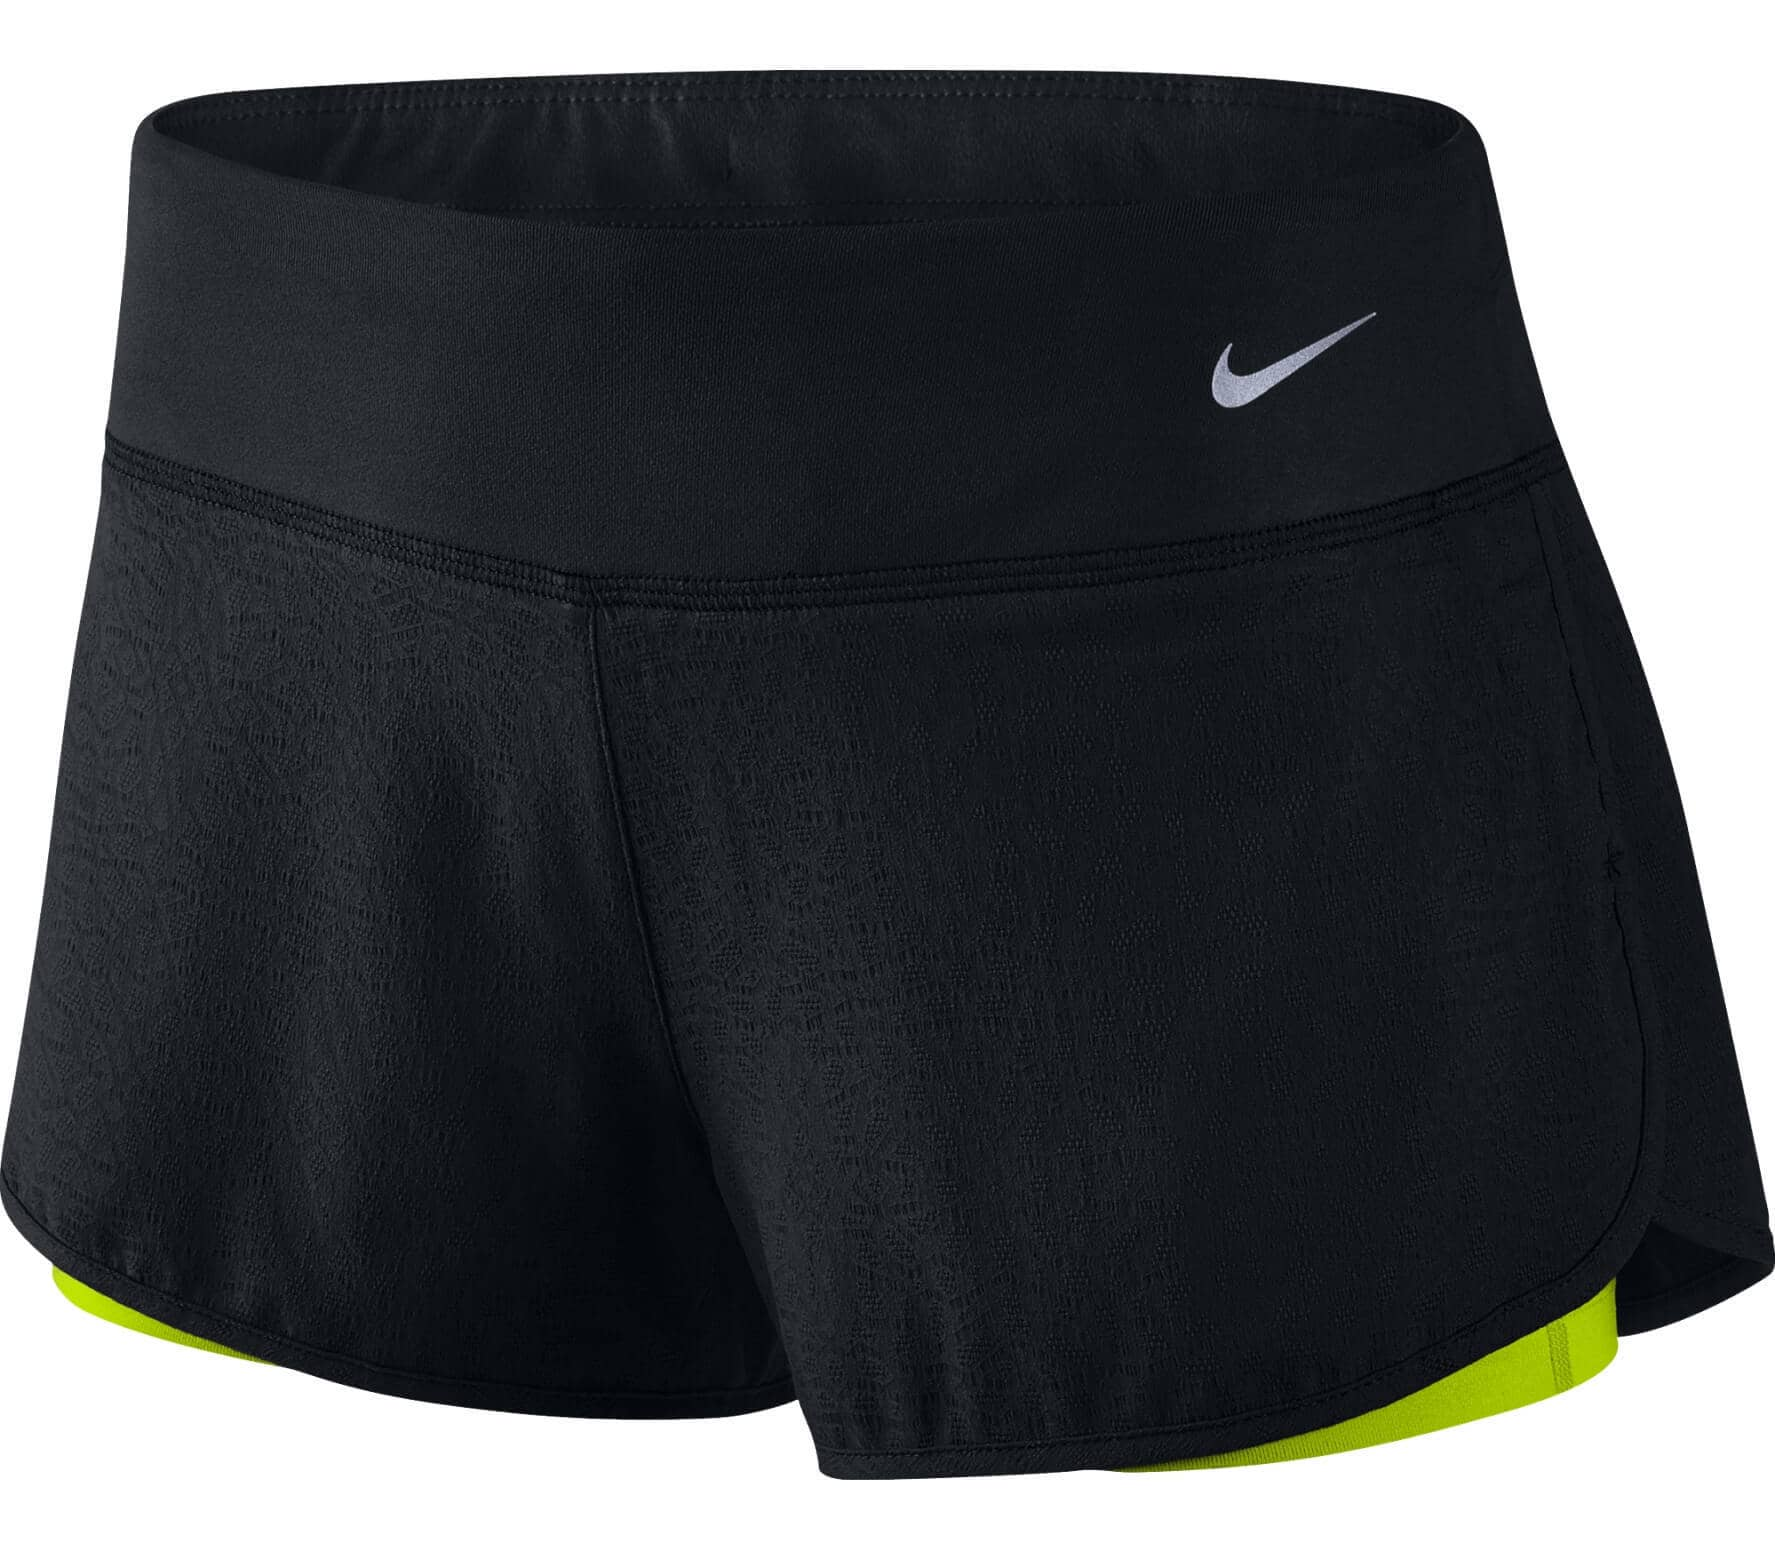 453a62deca074 Nike - 3 Inch Rival Jacquard 2-in-1 women's running shorts (black ...